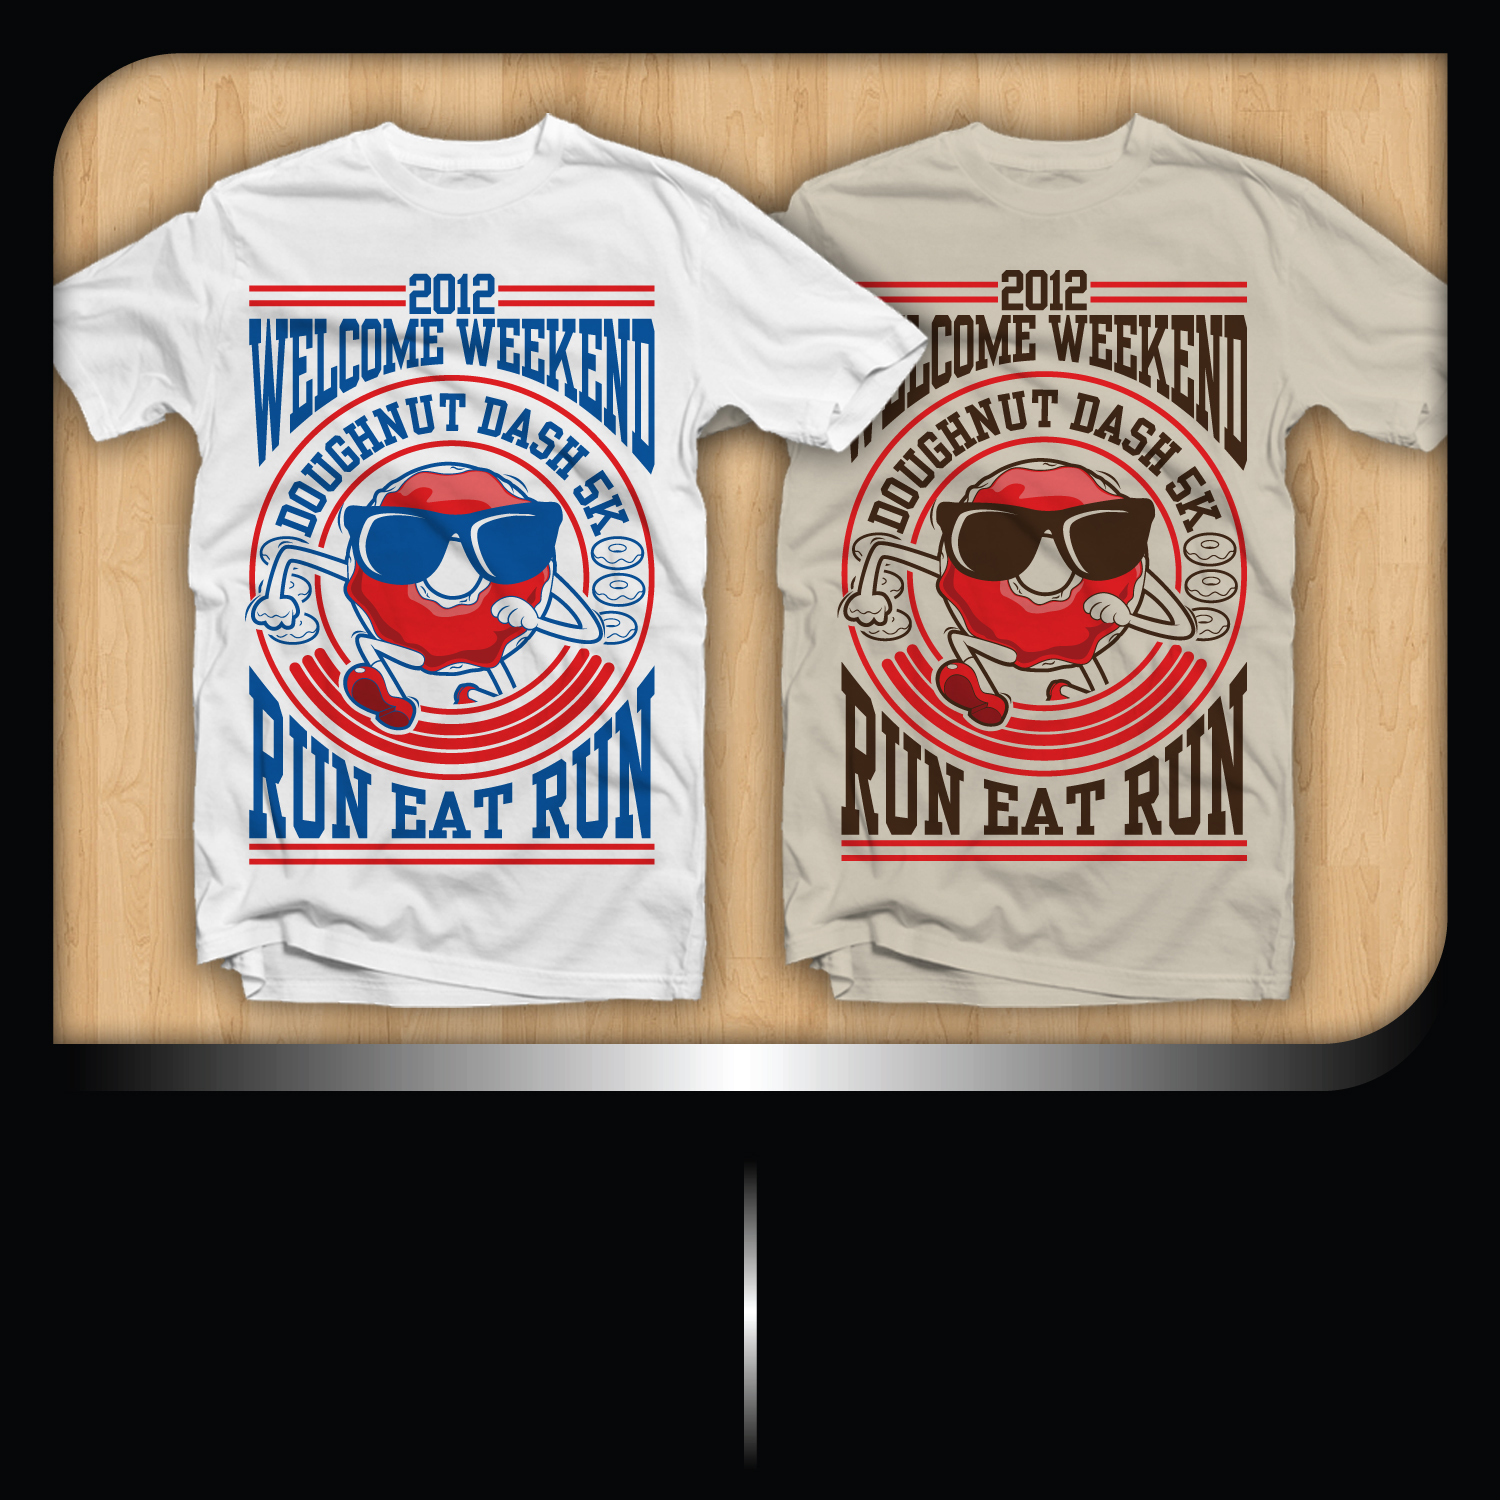 2012 Welcome Weekend Doughnut Dash 5k Fun Run T Shirt